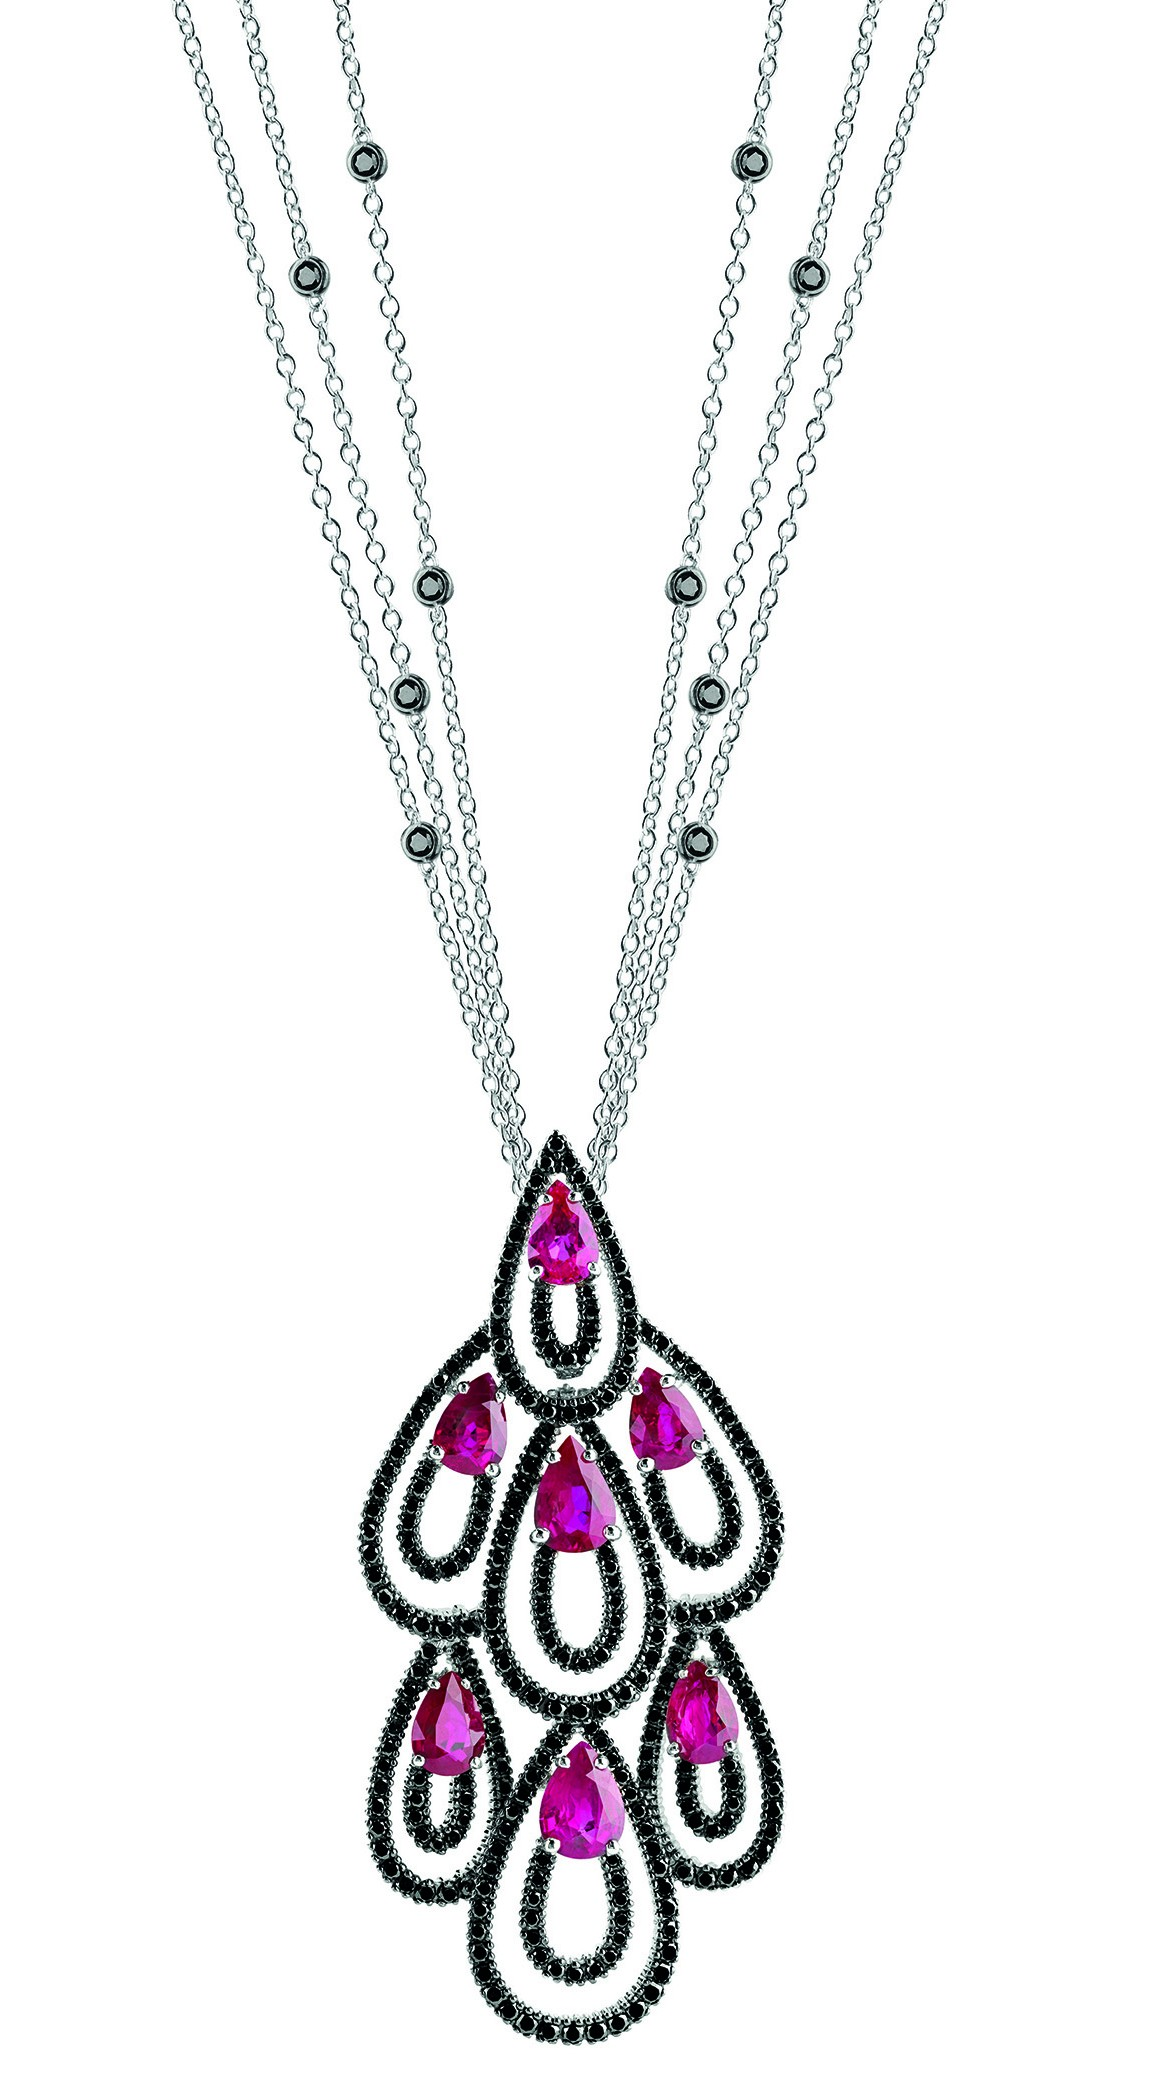 Damiani - Drip Drop masterpiece - white gold pendant with black diamonds and rubies